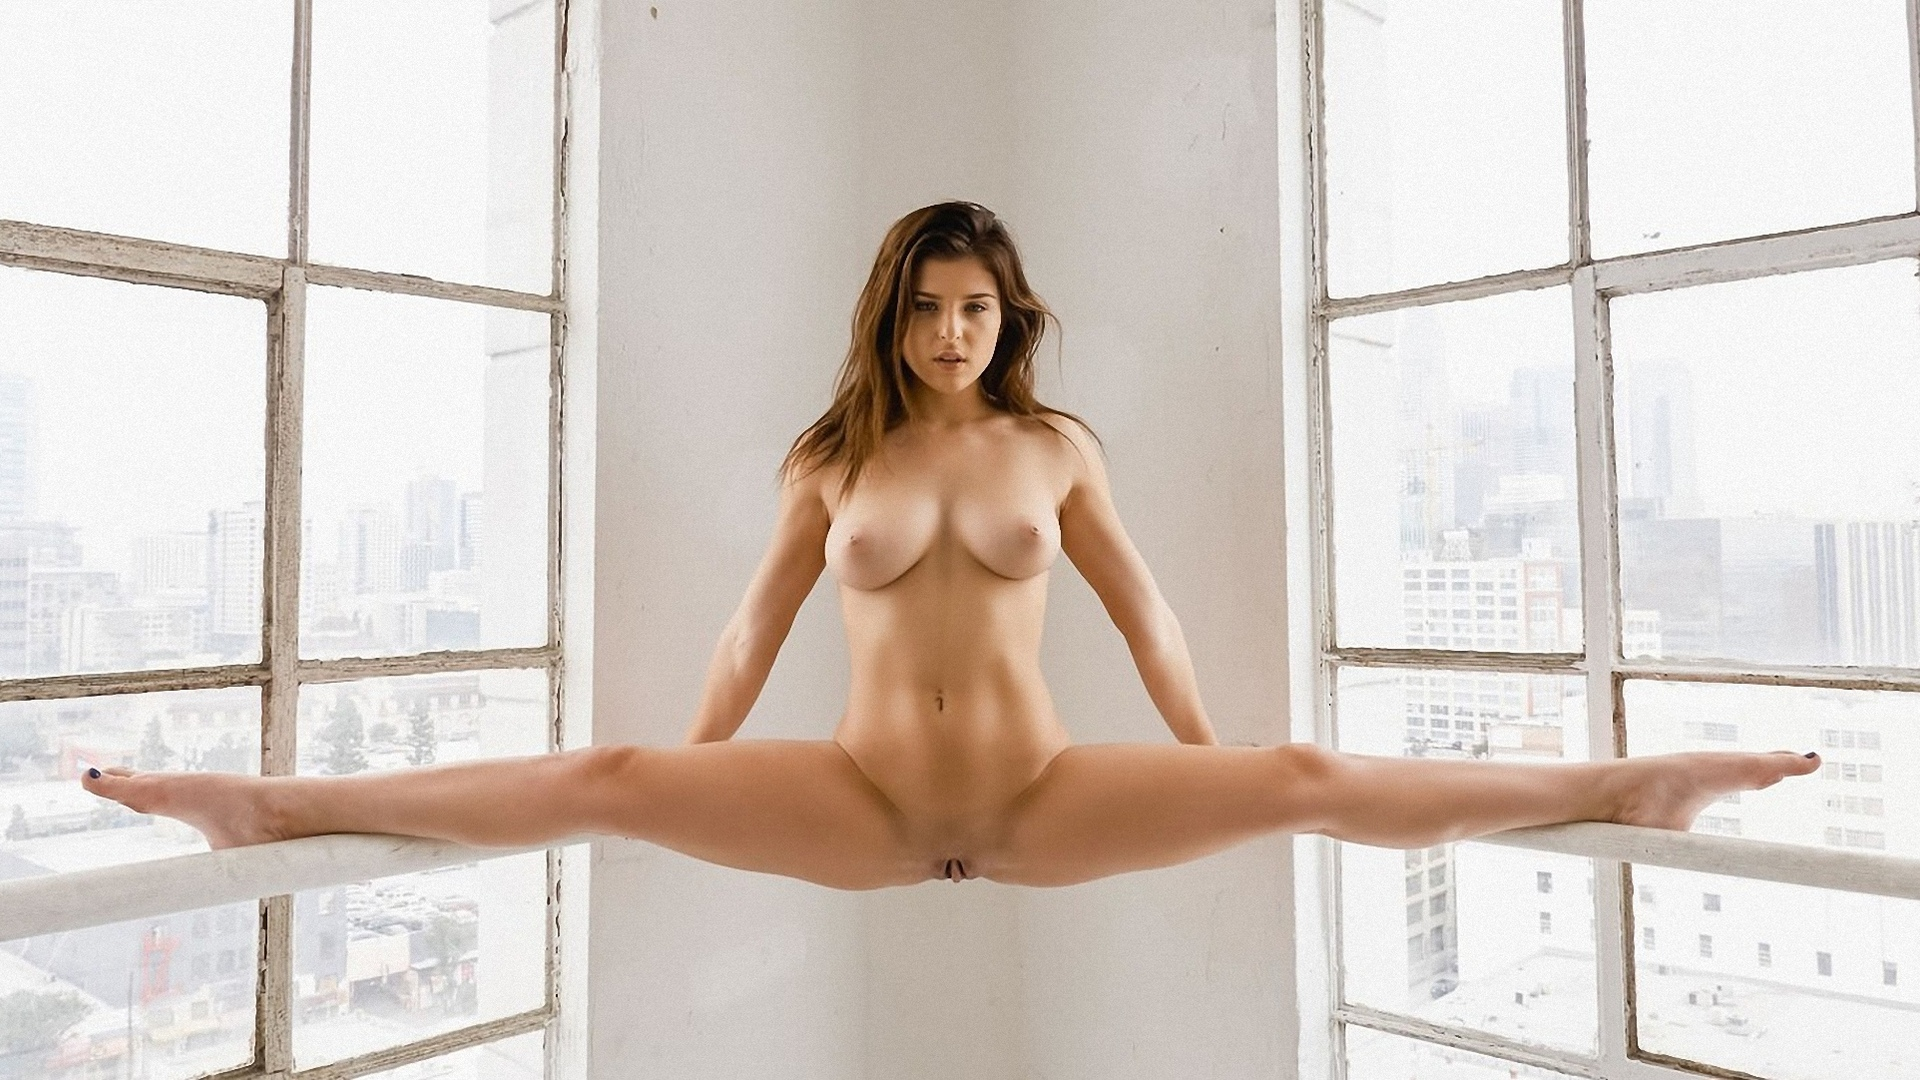 Splits naked, tall female sex pics